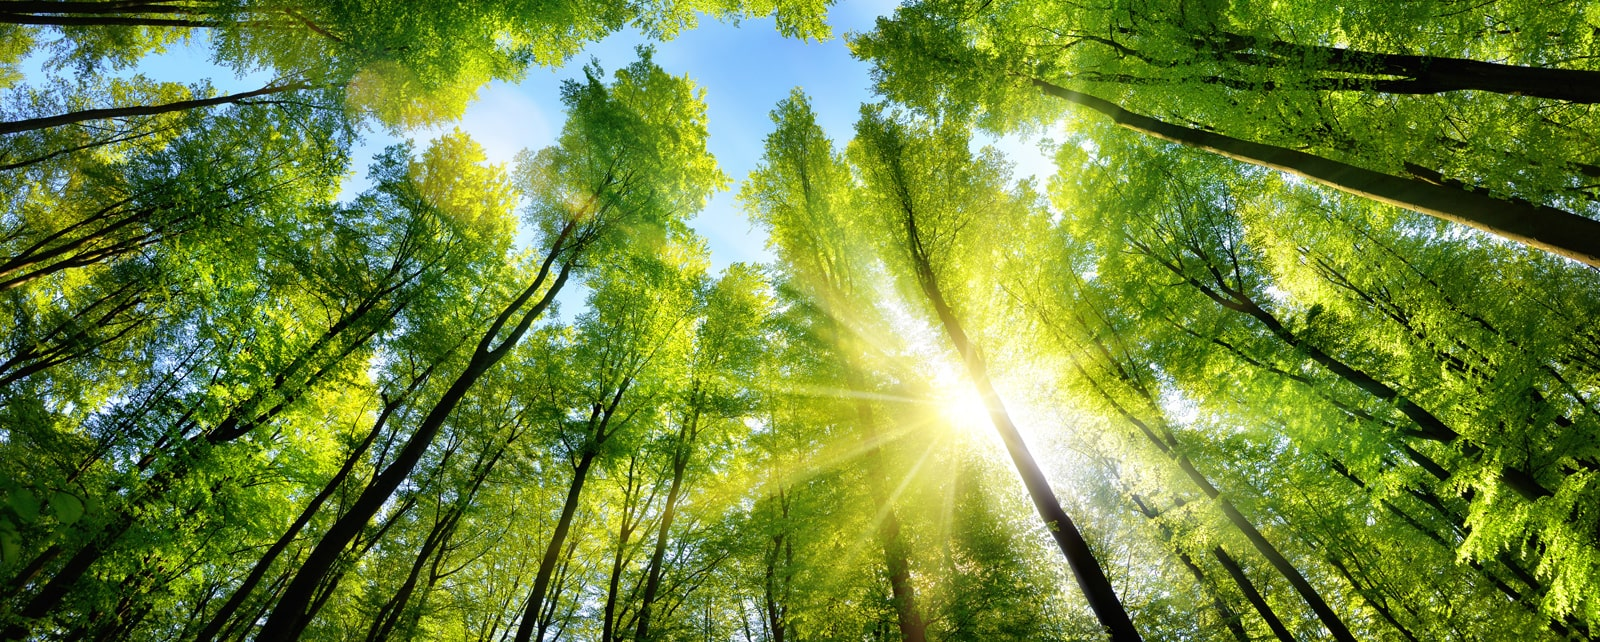 sunshine filters through the tall canopy of trees in the forest.